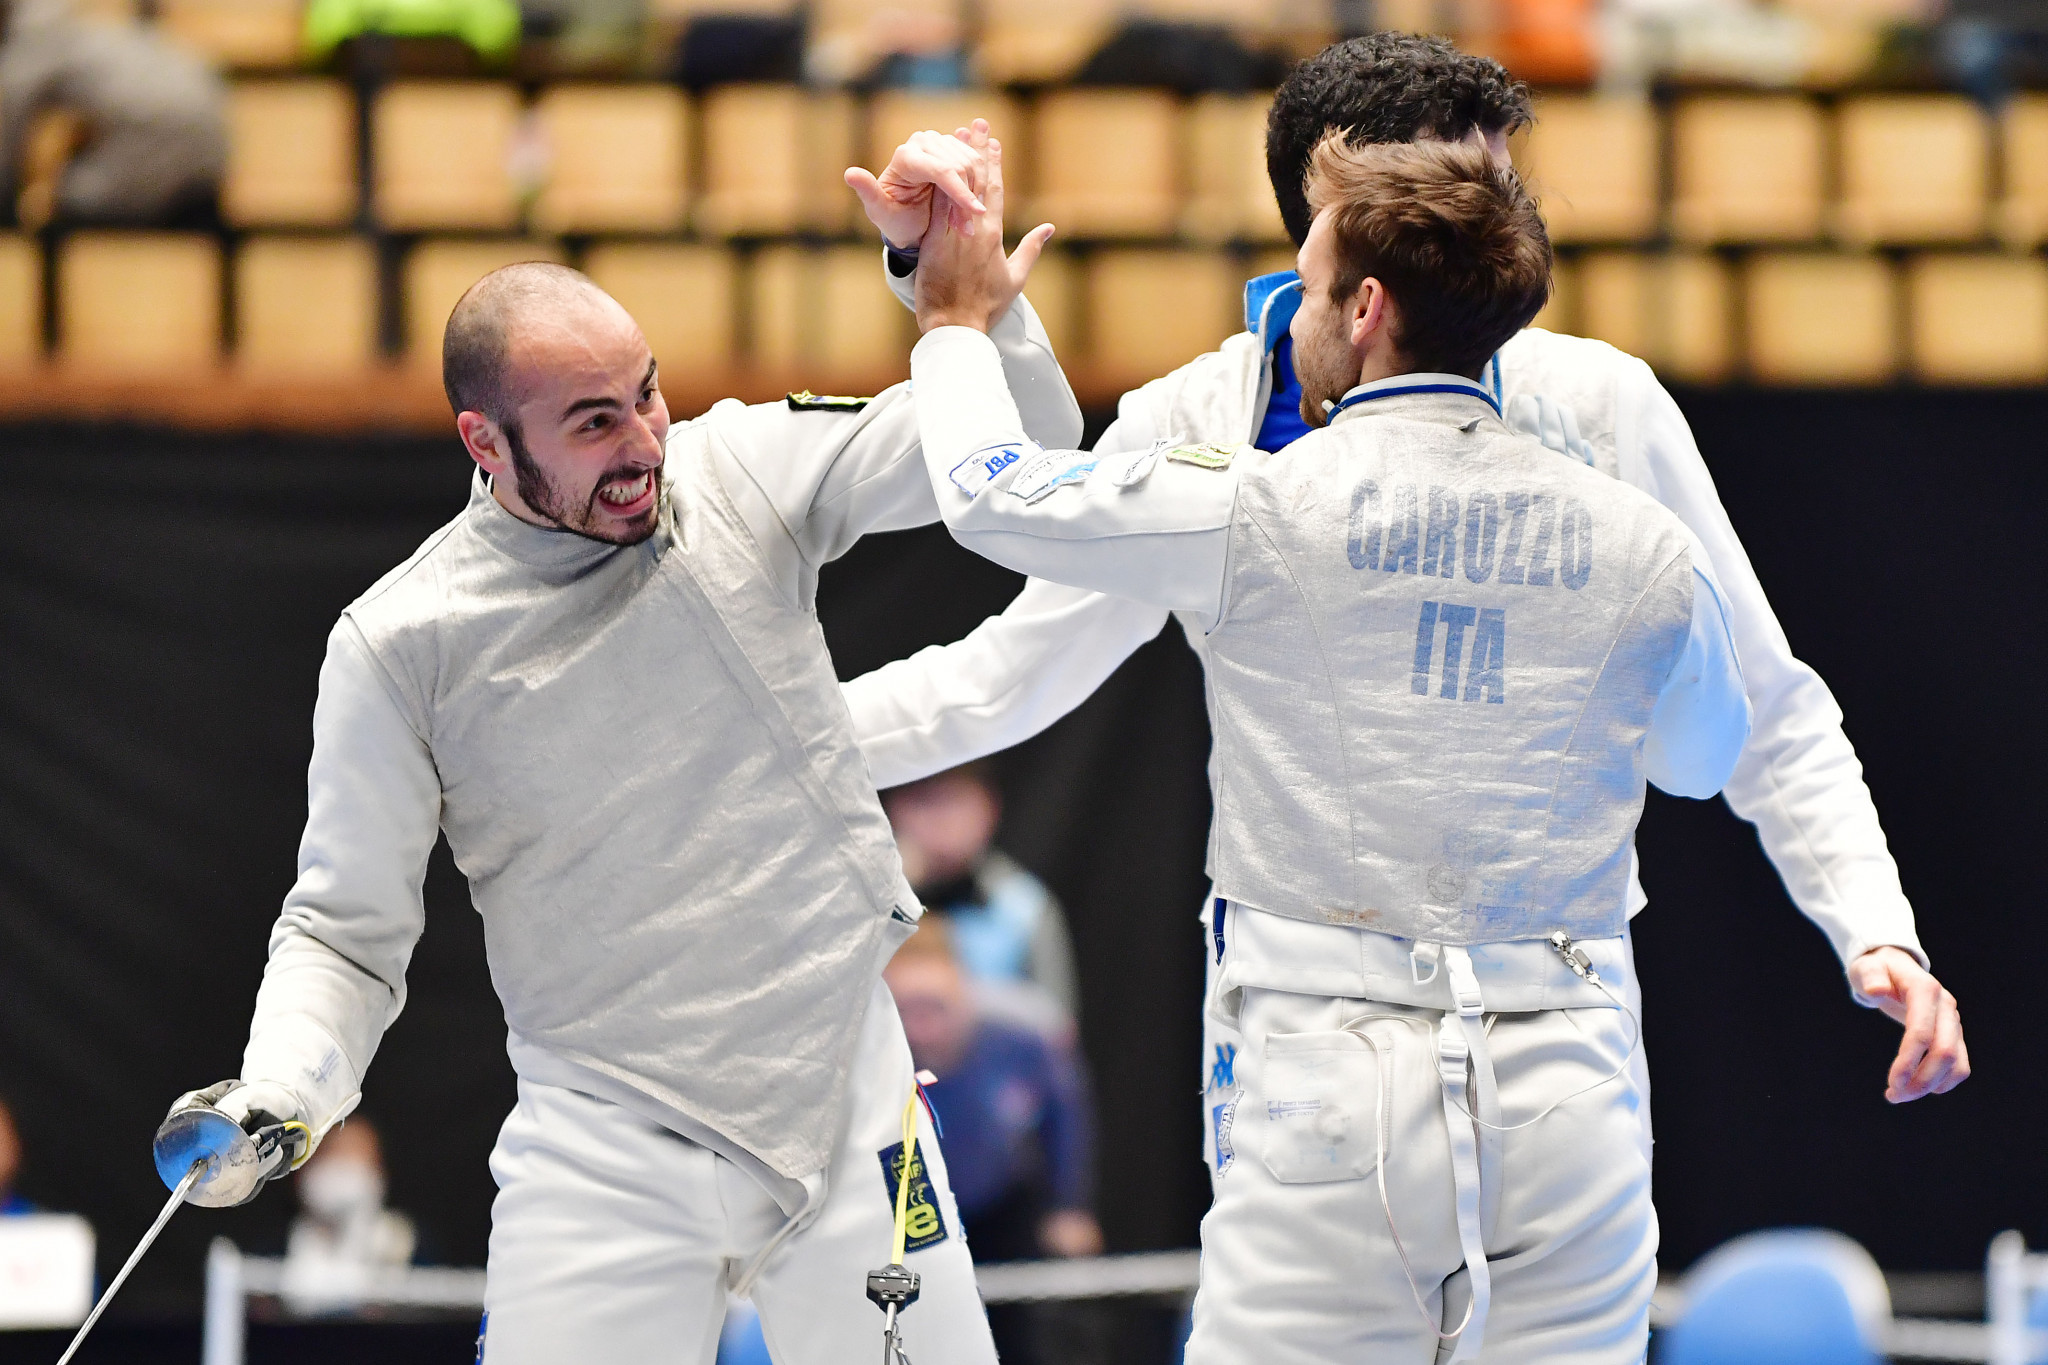 Italy claim men's team title as France win women's at FIE Foil World Cups